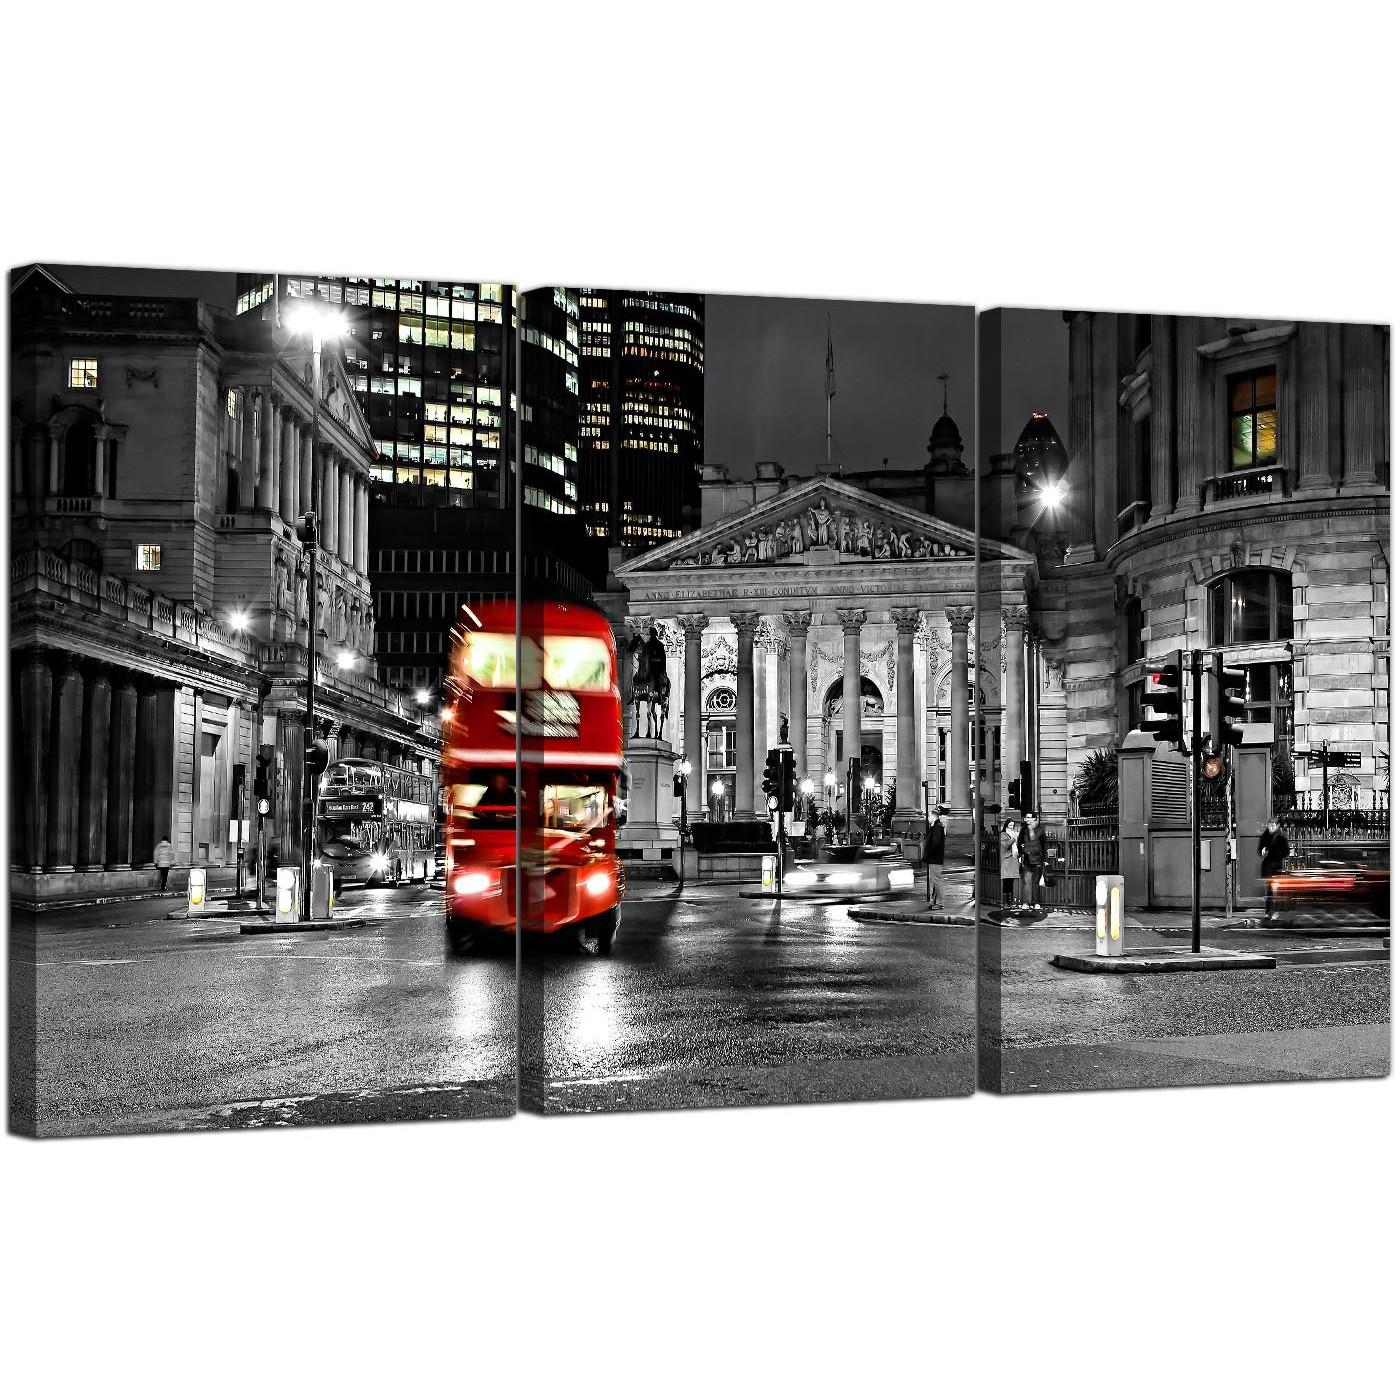 Red London Bus Canvas Wall Art 3 Panel For Your Living Room pertaining to London Scene Wall Art